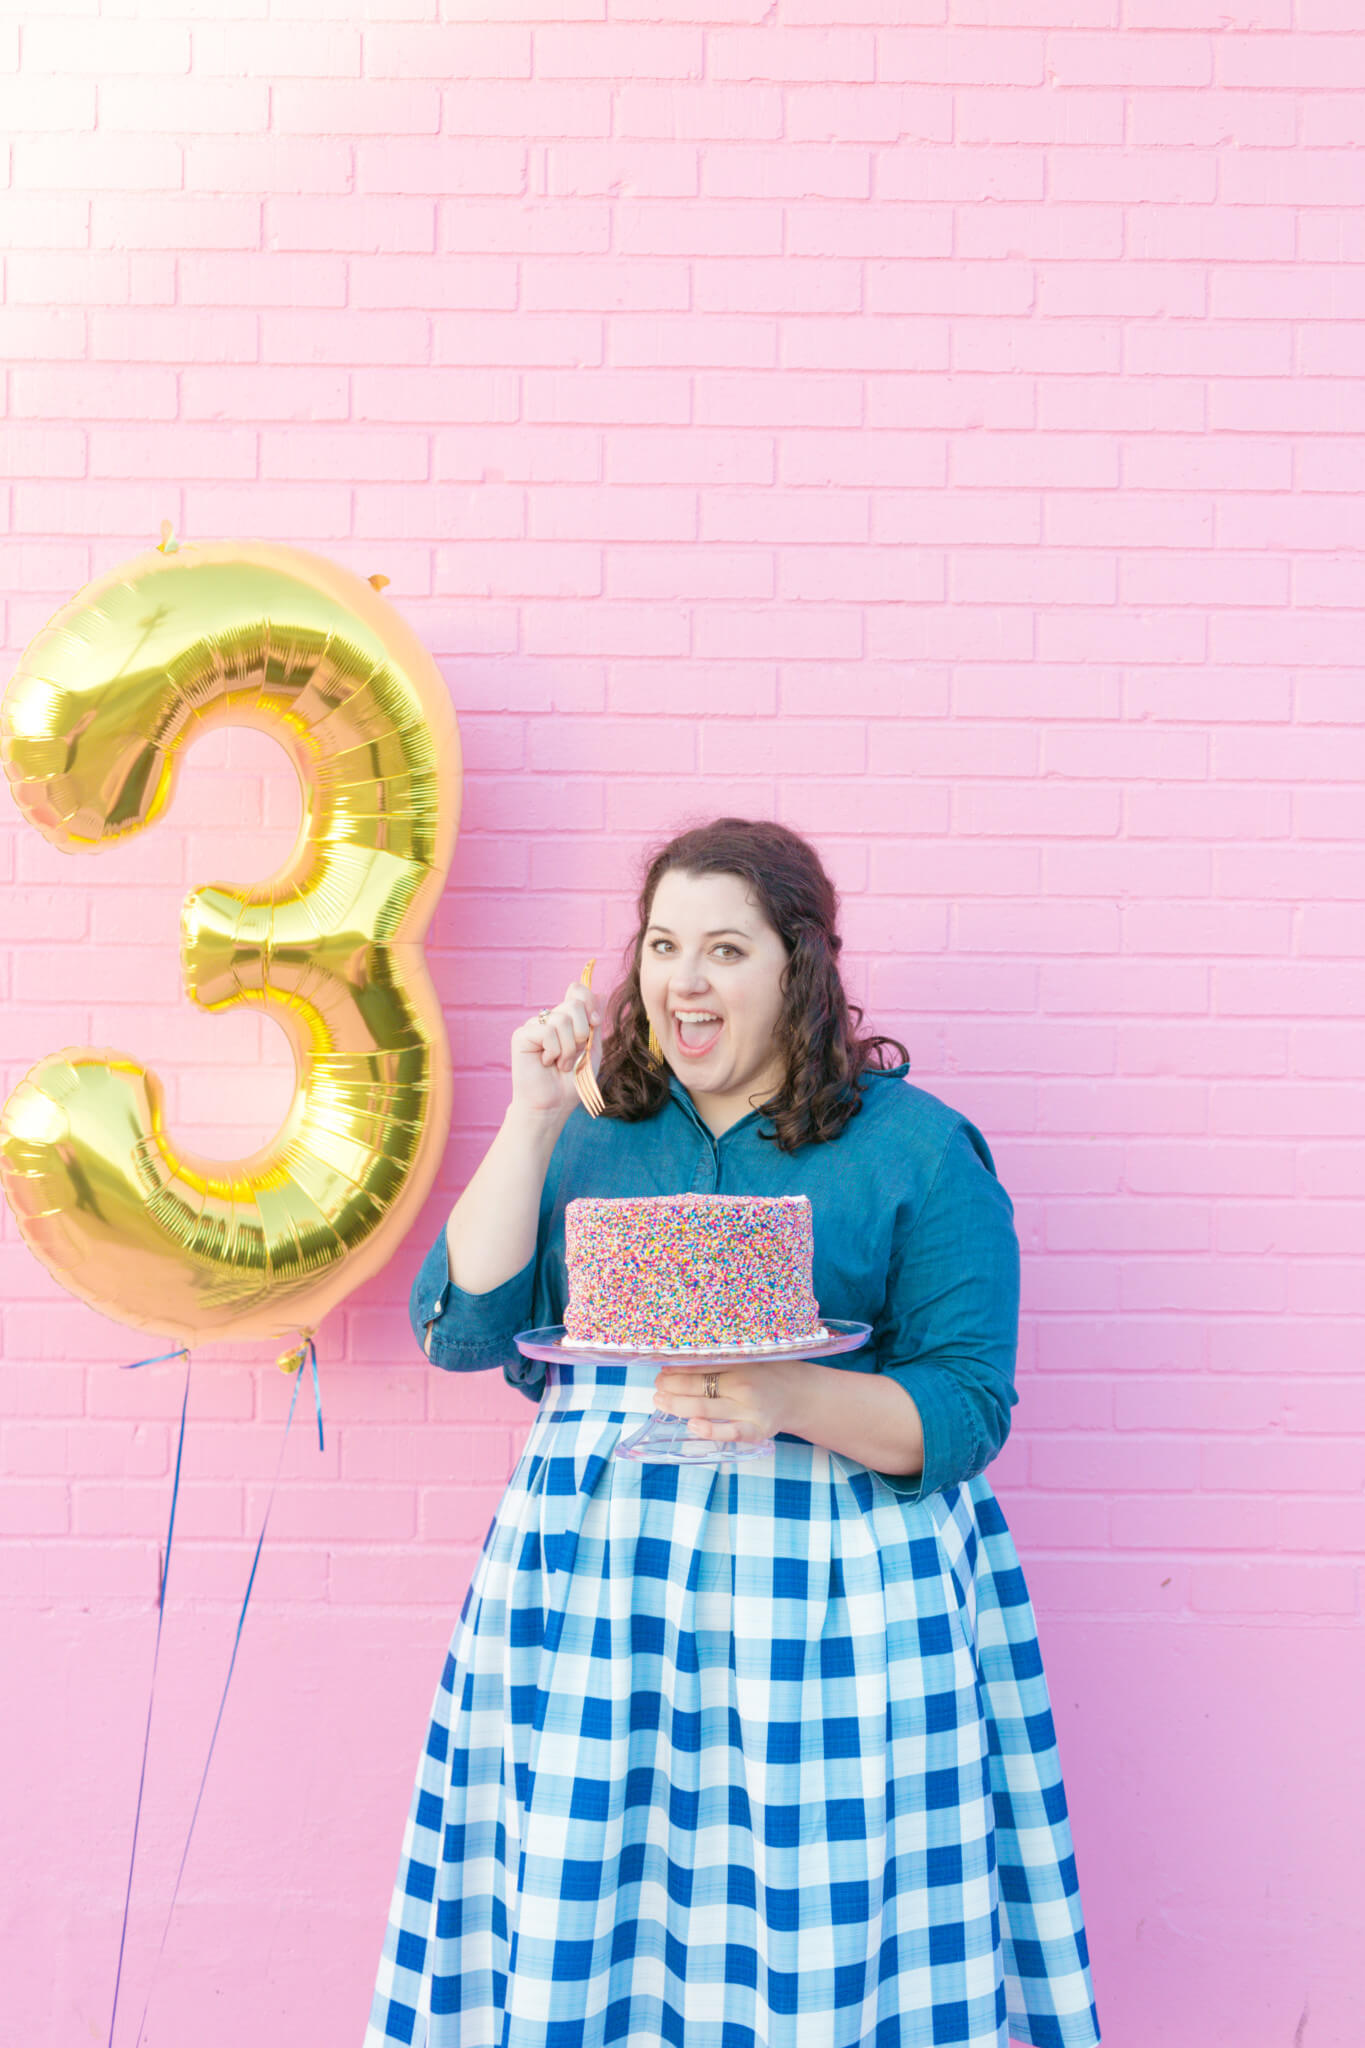 Happy 3rd Birthday, SGSB! Today, I'm looking back on what my blogging journey has looked like these past 3 years. | Something Gold, Something Blue a curvy fashion blog by Emily Bastedo